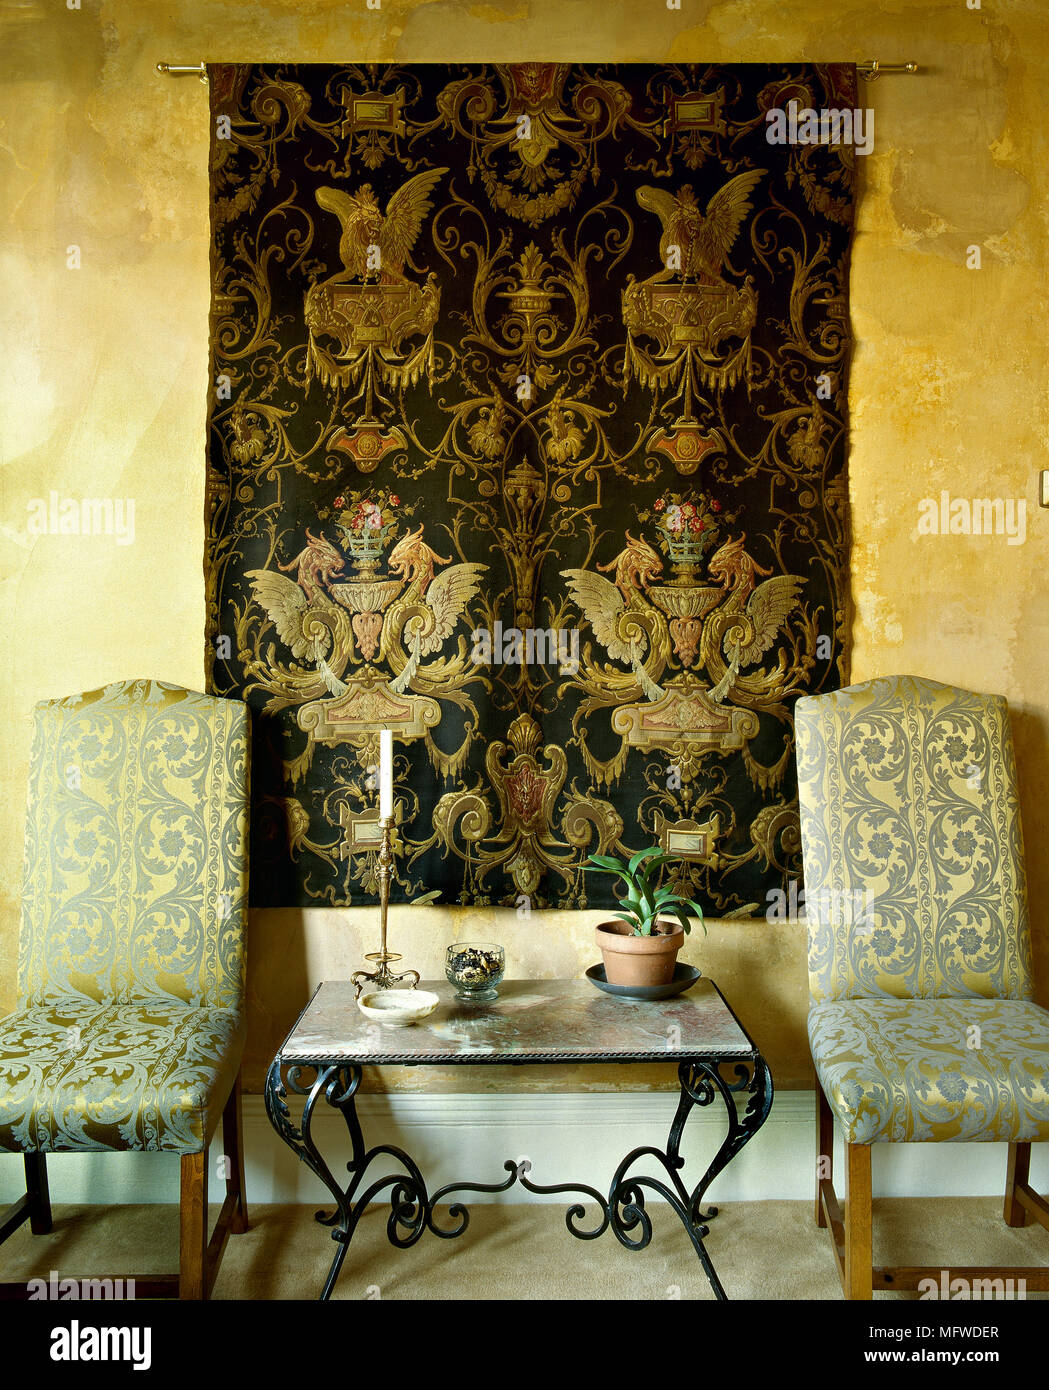 A Detail Of A Traditional Sitting Room With Yellow Walls, Tapestry Wall  Hanging, Gold Upholstered Chairs, Iron Table, Marble Top,